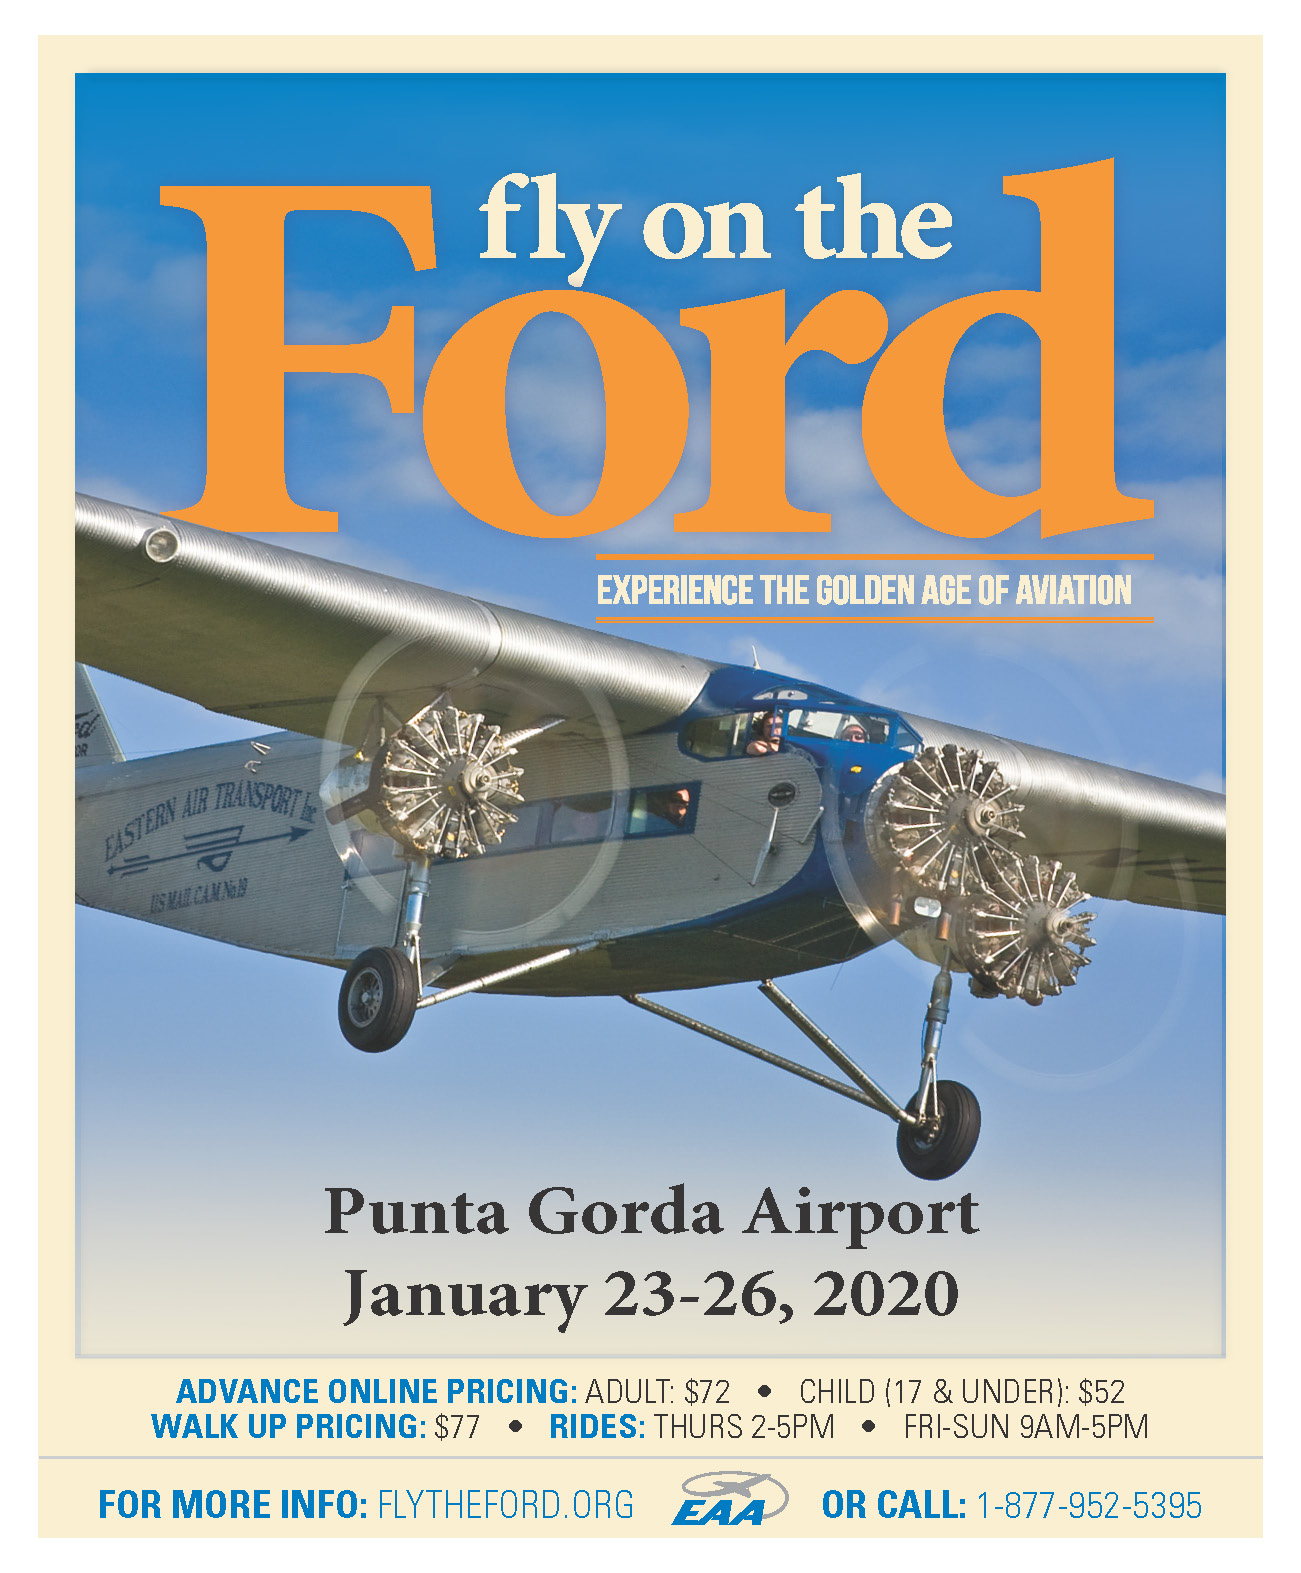 Flier for information on Flying on the Ford Aircraft